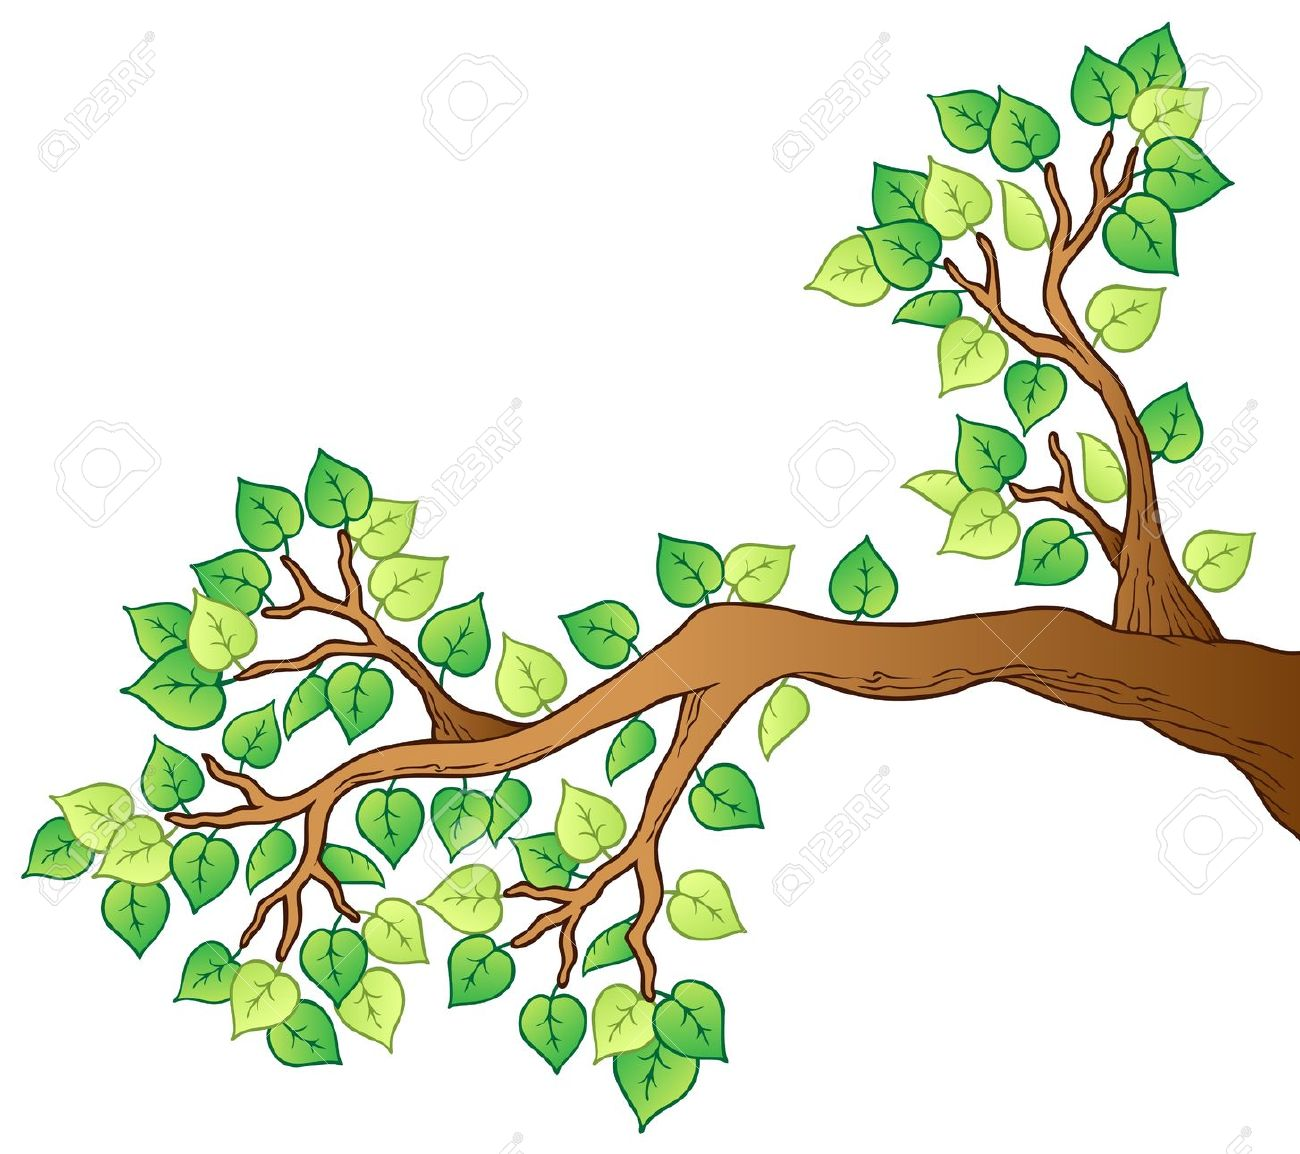 Tree Branch: Cartoon Tree .-tree branch: Cartoon tree .-9